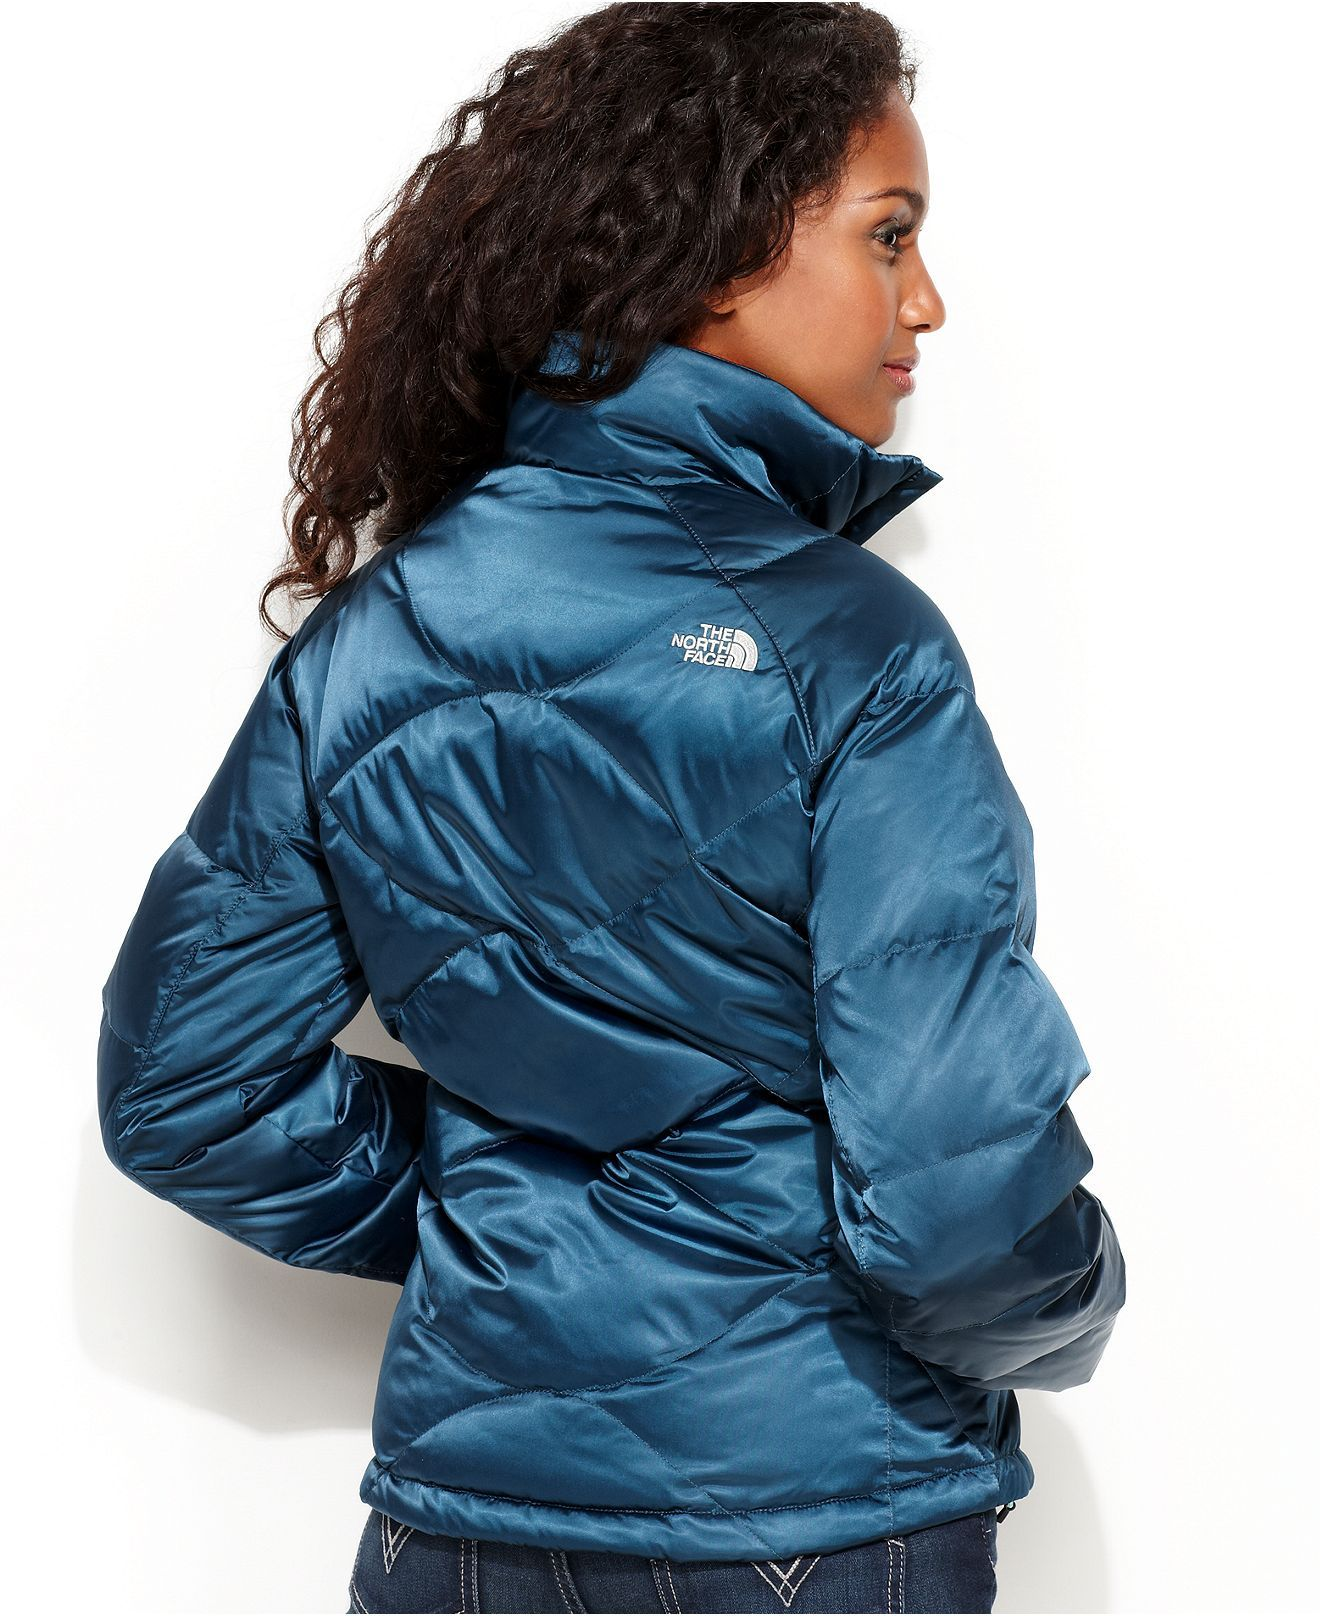 The North Face Jacket Aconcagua Quilted Down Lightweight Womens Coats Macy S North Face Jacket Jackets The North Face [ 1616 x 1320 Pixel ]